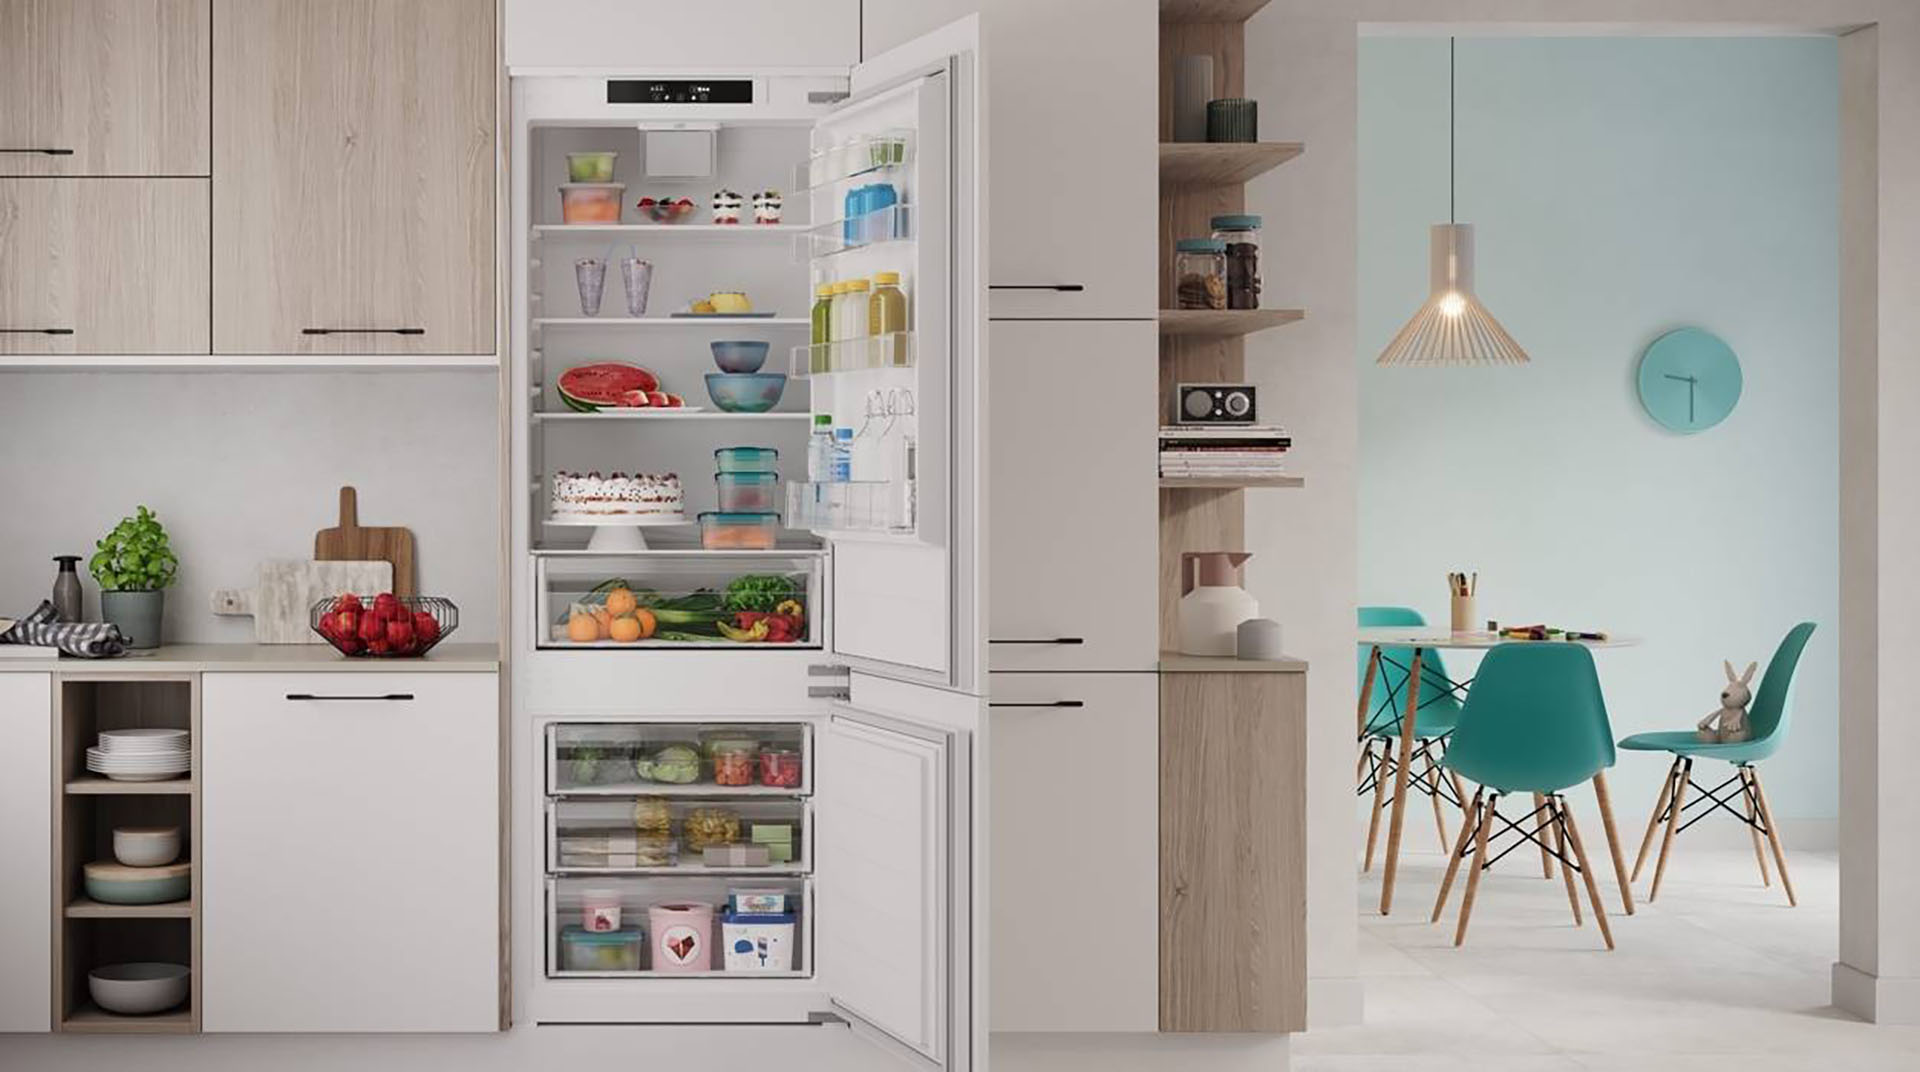 More space for your shopping and less waste with the Indesit Space 400 fridge - Cucine LUBE